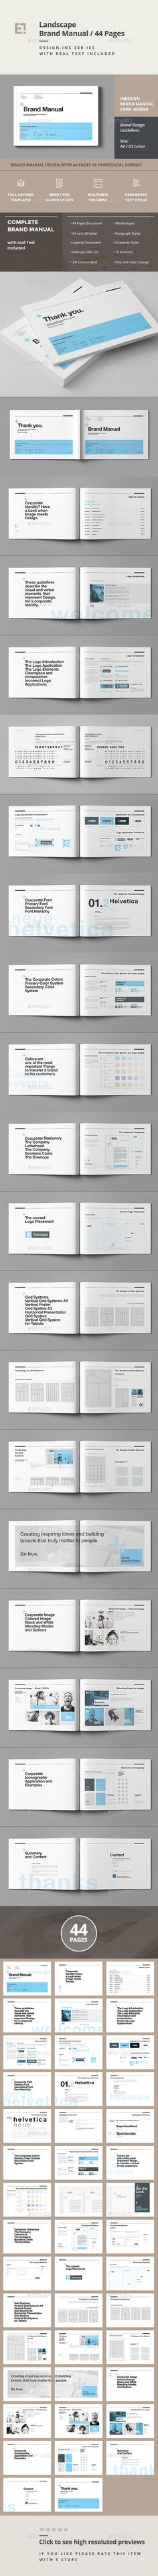 Brand Manual  Editor Corporate Design And Design Templates